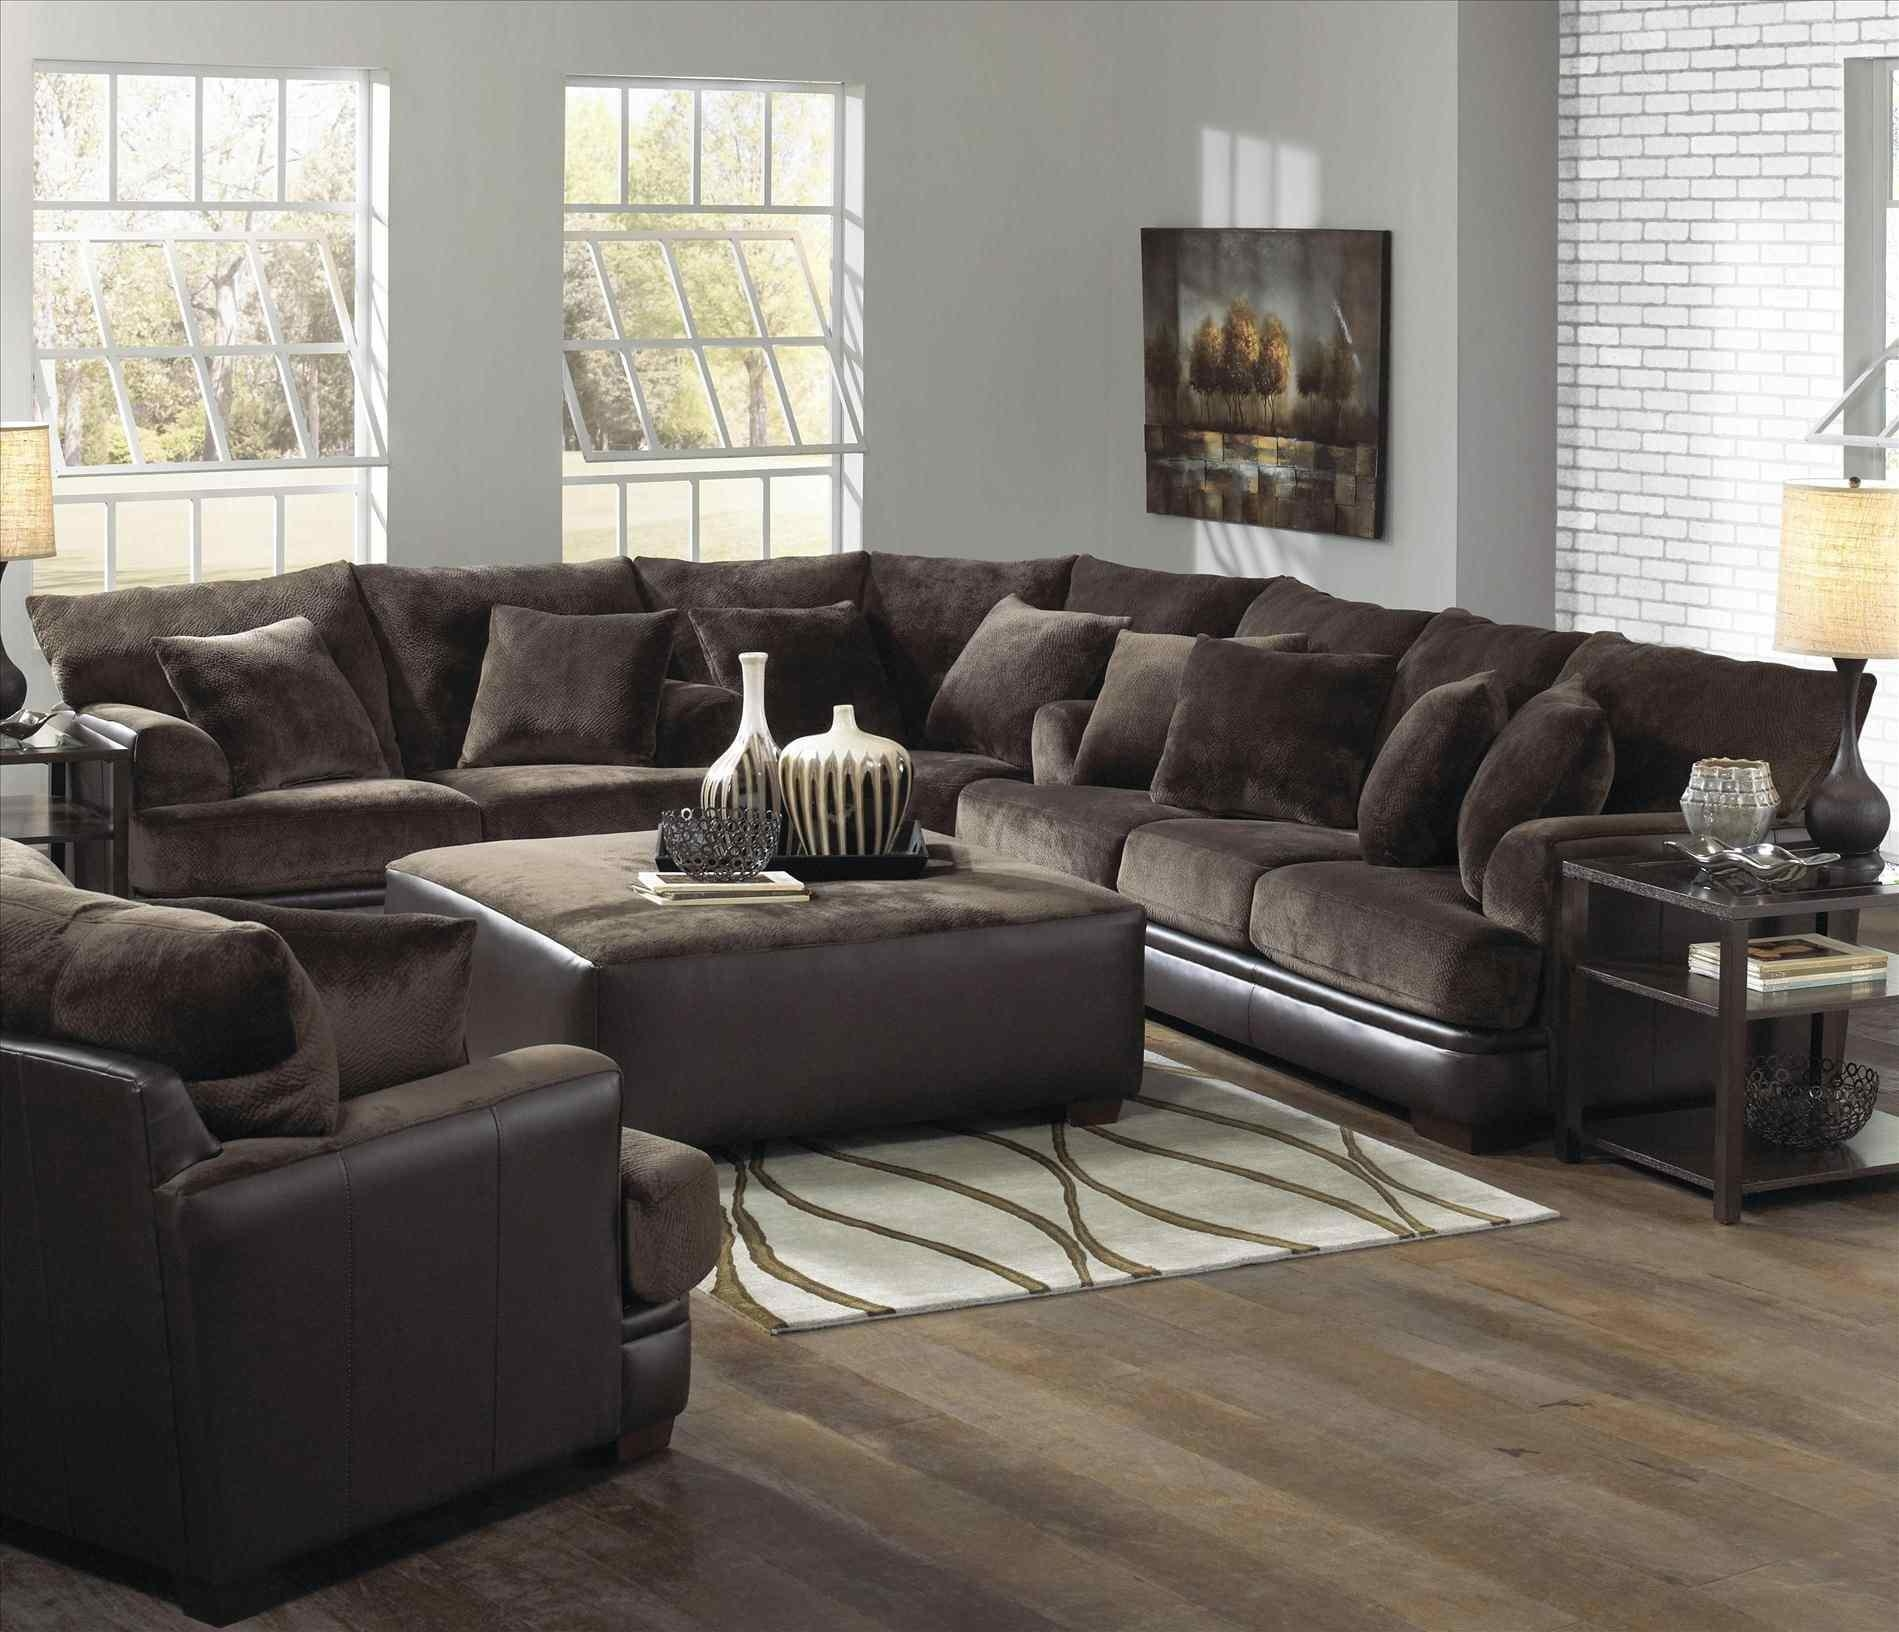 Sectional Sofas Denver | Chikara Do Reiki Inside Denver Sectional (Image 11 of 15)